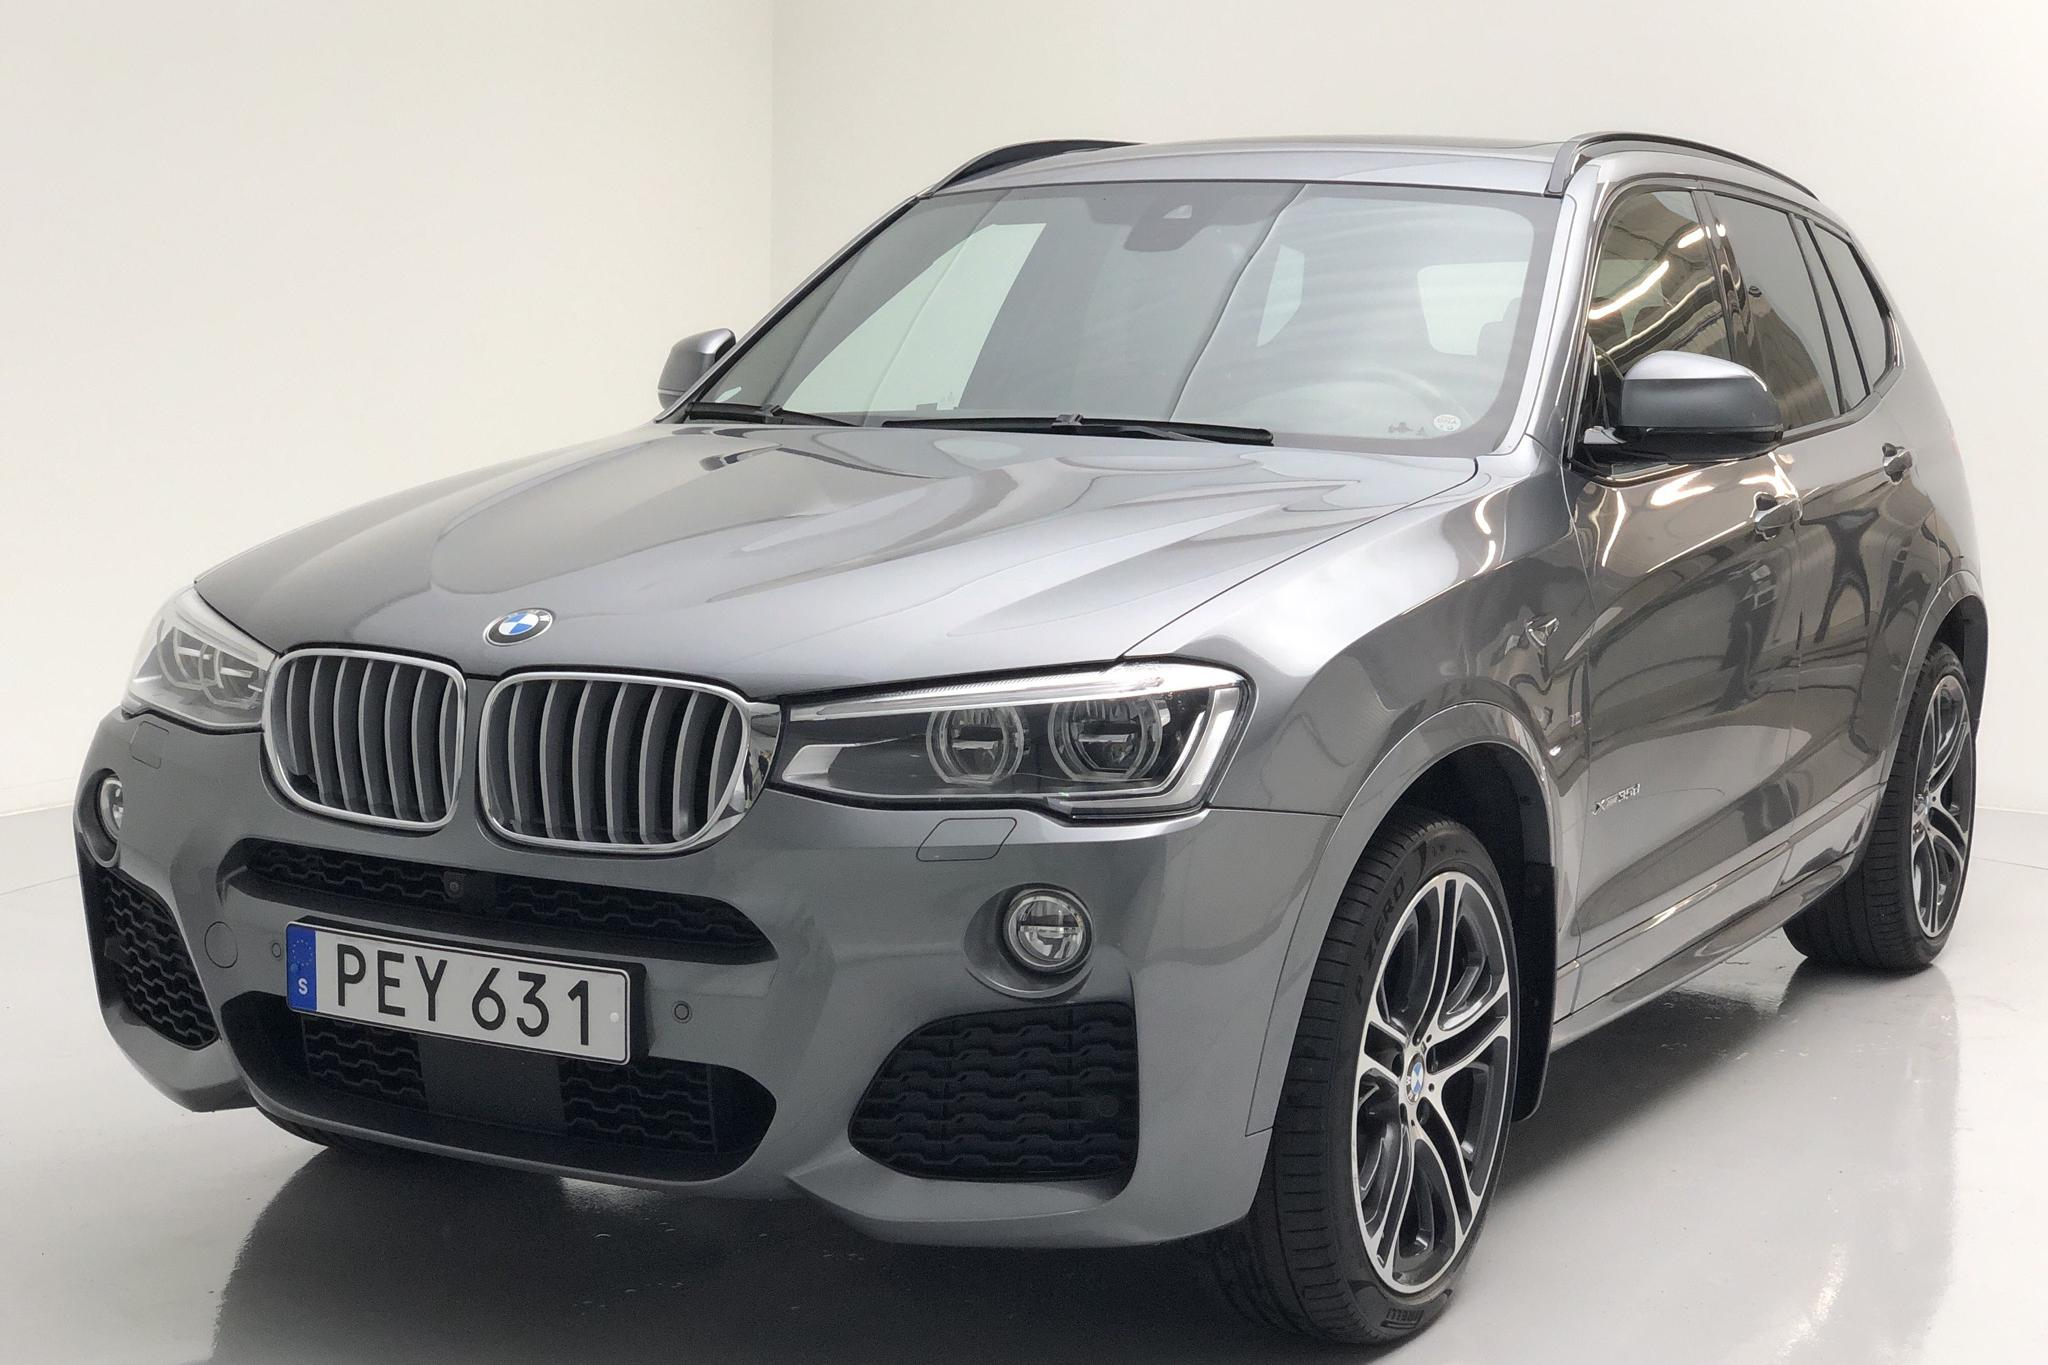 BMW X3 xDrive35d, F25 (313hk) - 44 090 km - Automatic - gray - 2017